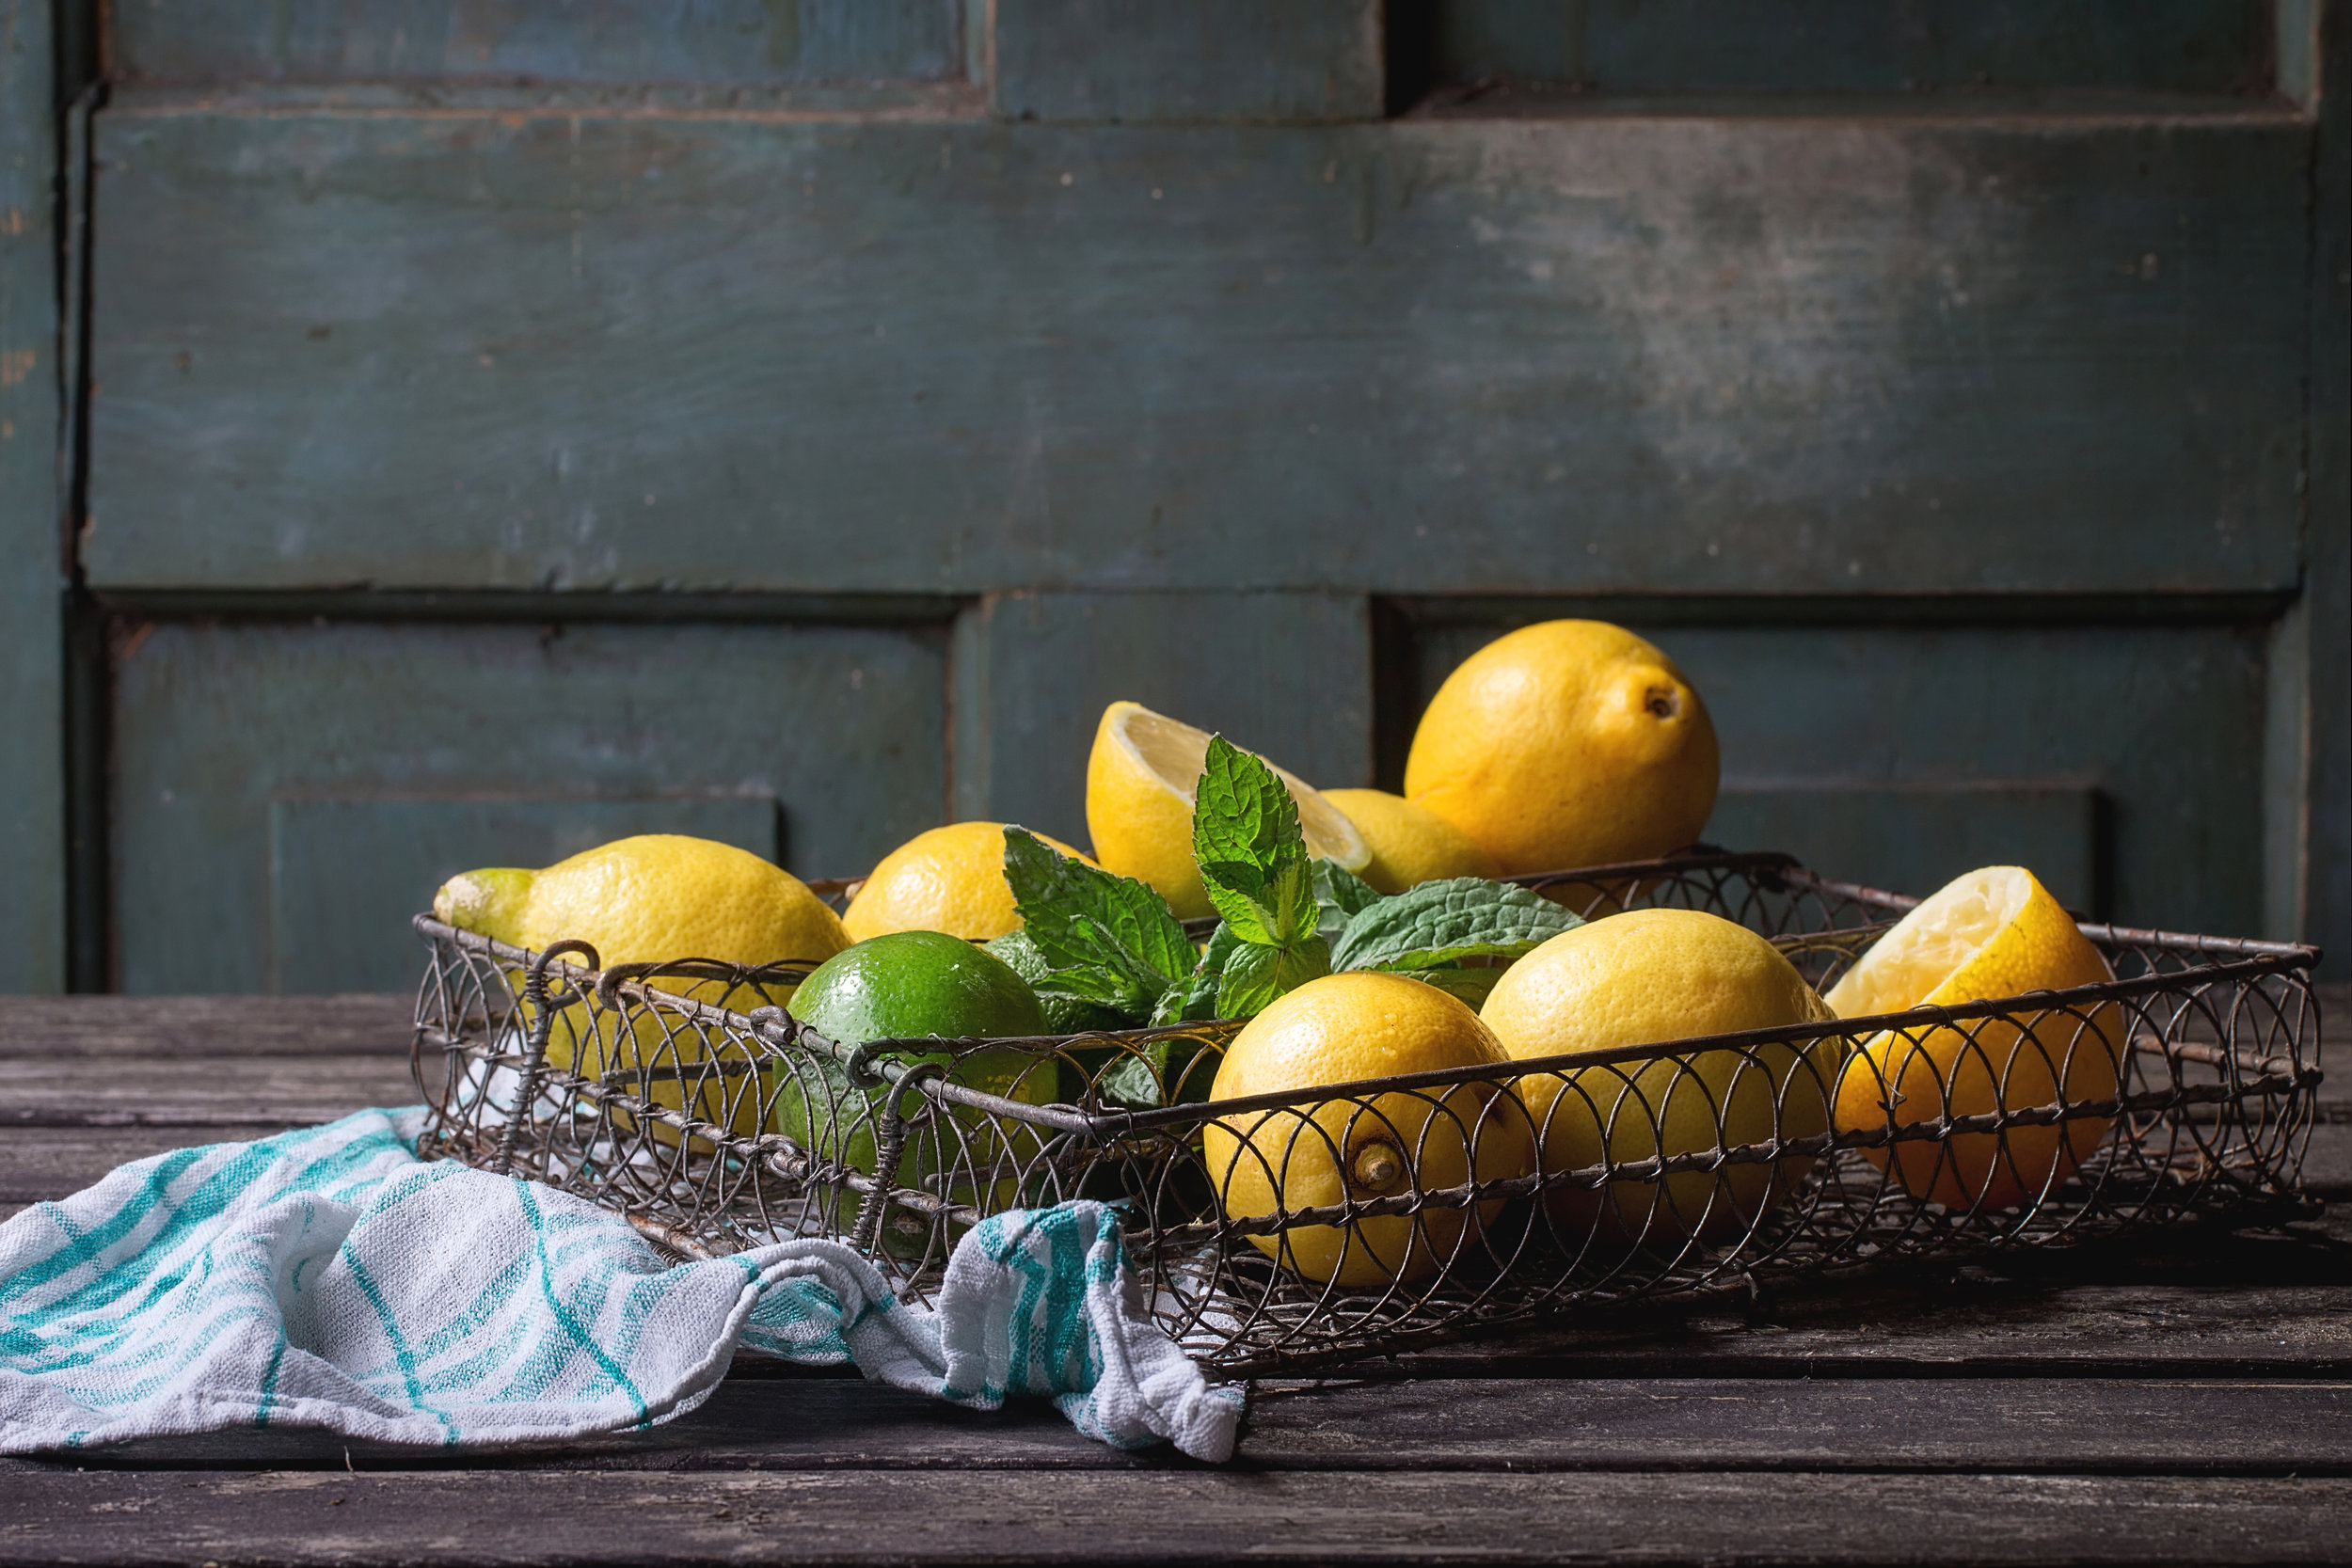 How to clean pesticides off lemons - WATCH NOW